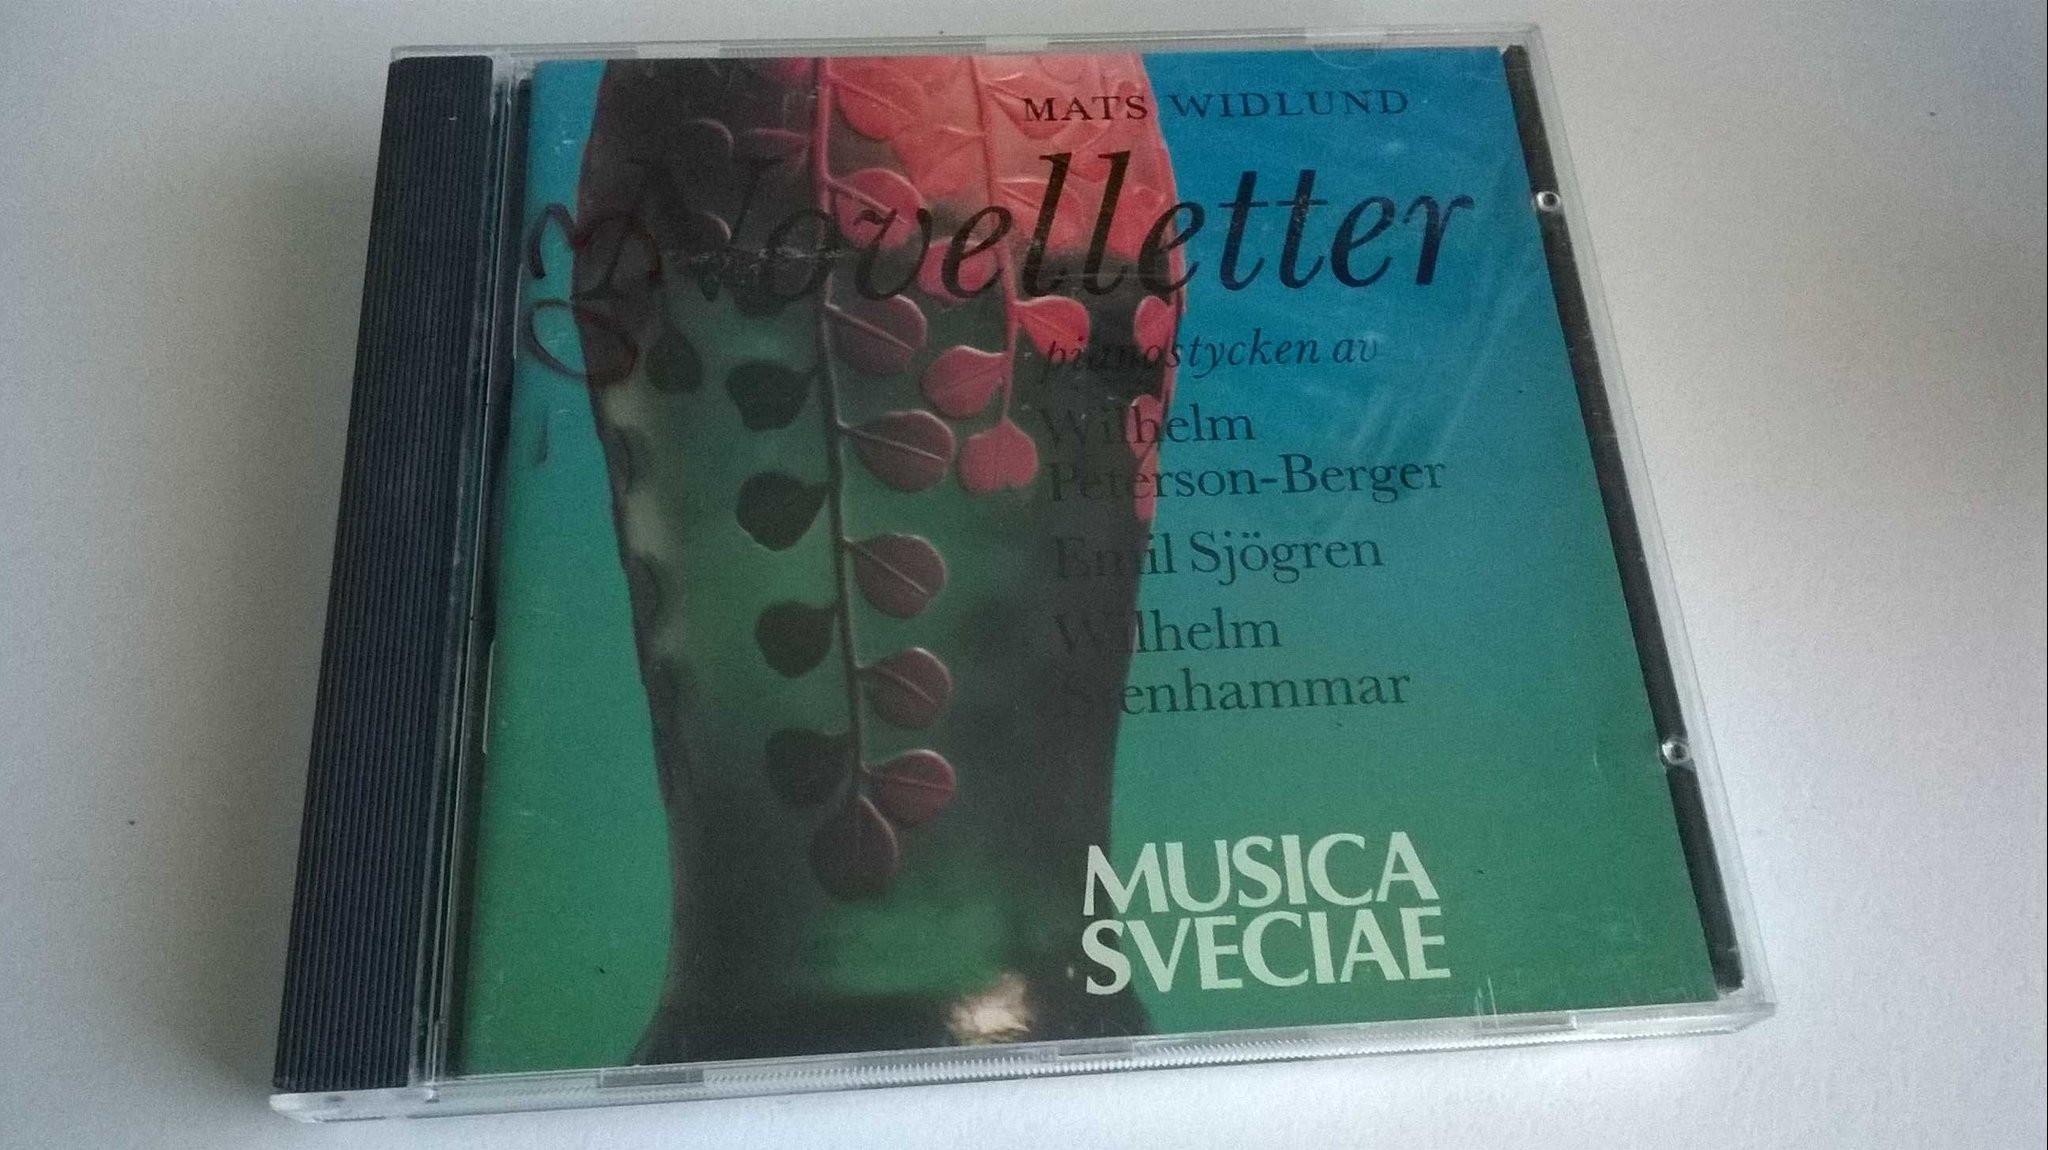 Mats Widlund - Novelletter, CD, Album